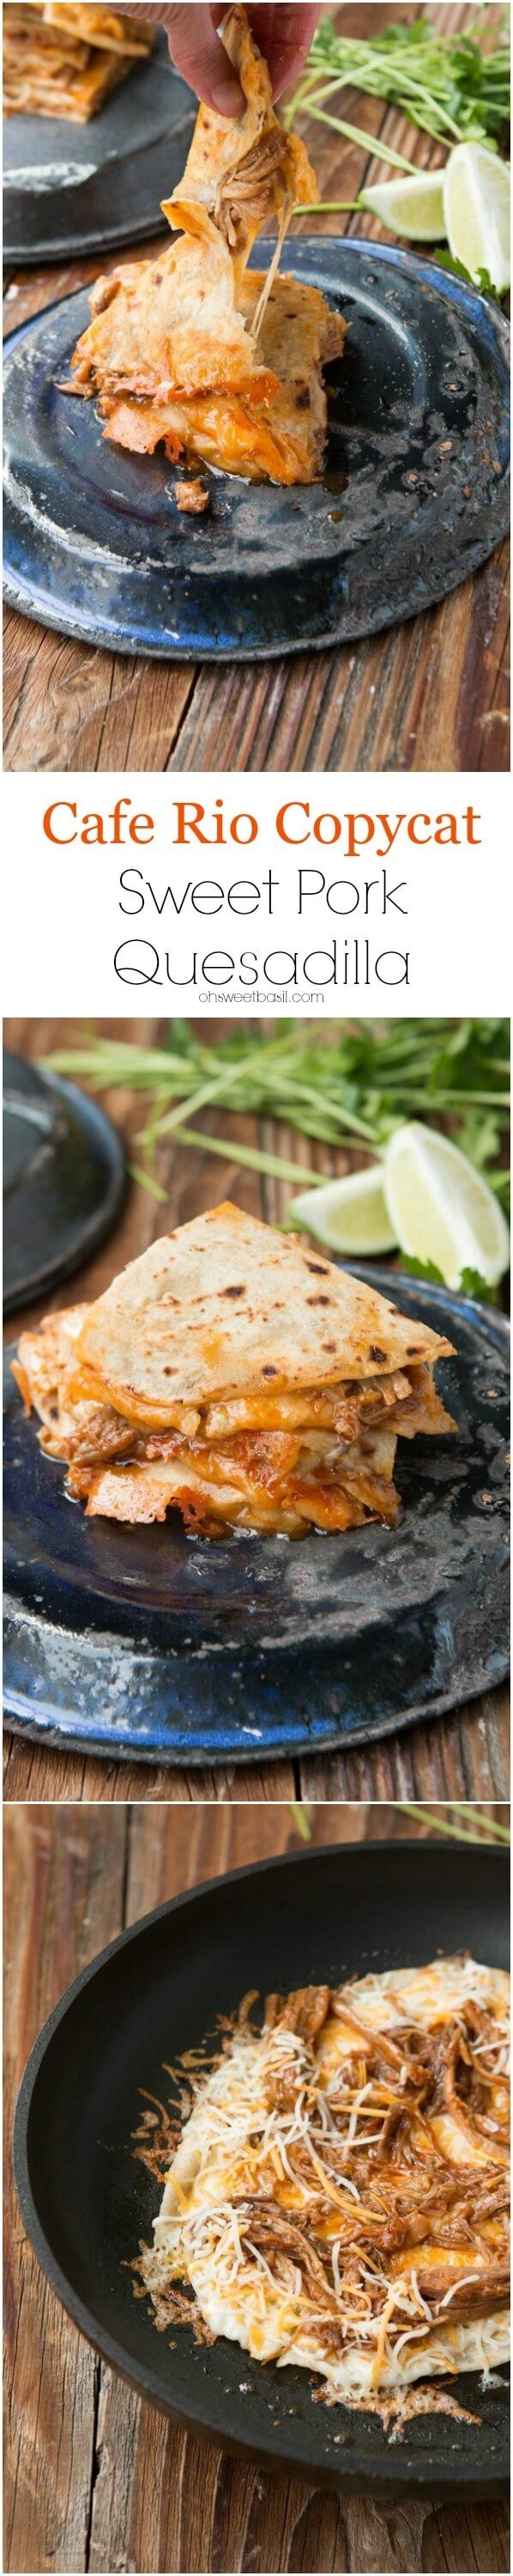 One of my favorite guilty pleasures is a cafe rio sweet pork quesadilla and now we can make them at home! ohsweetbasil.com